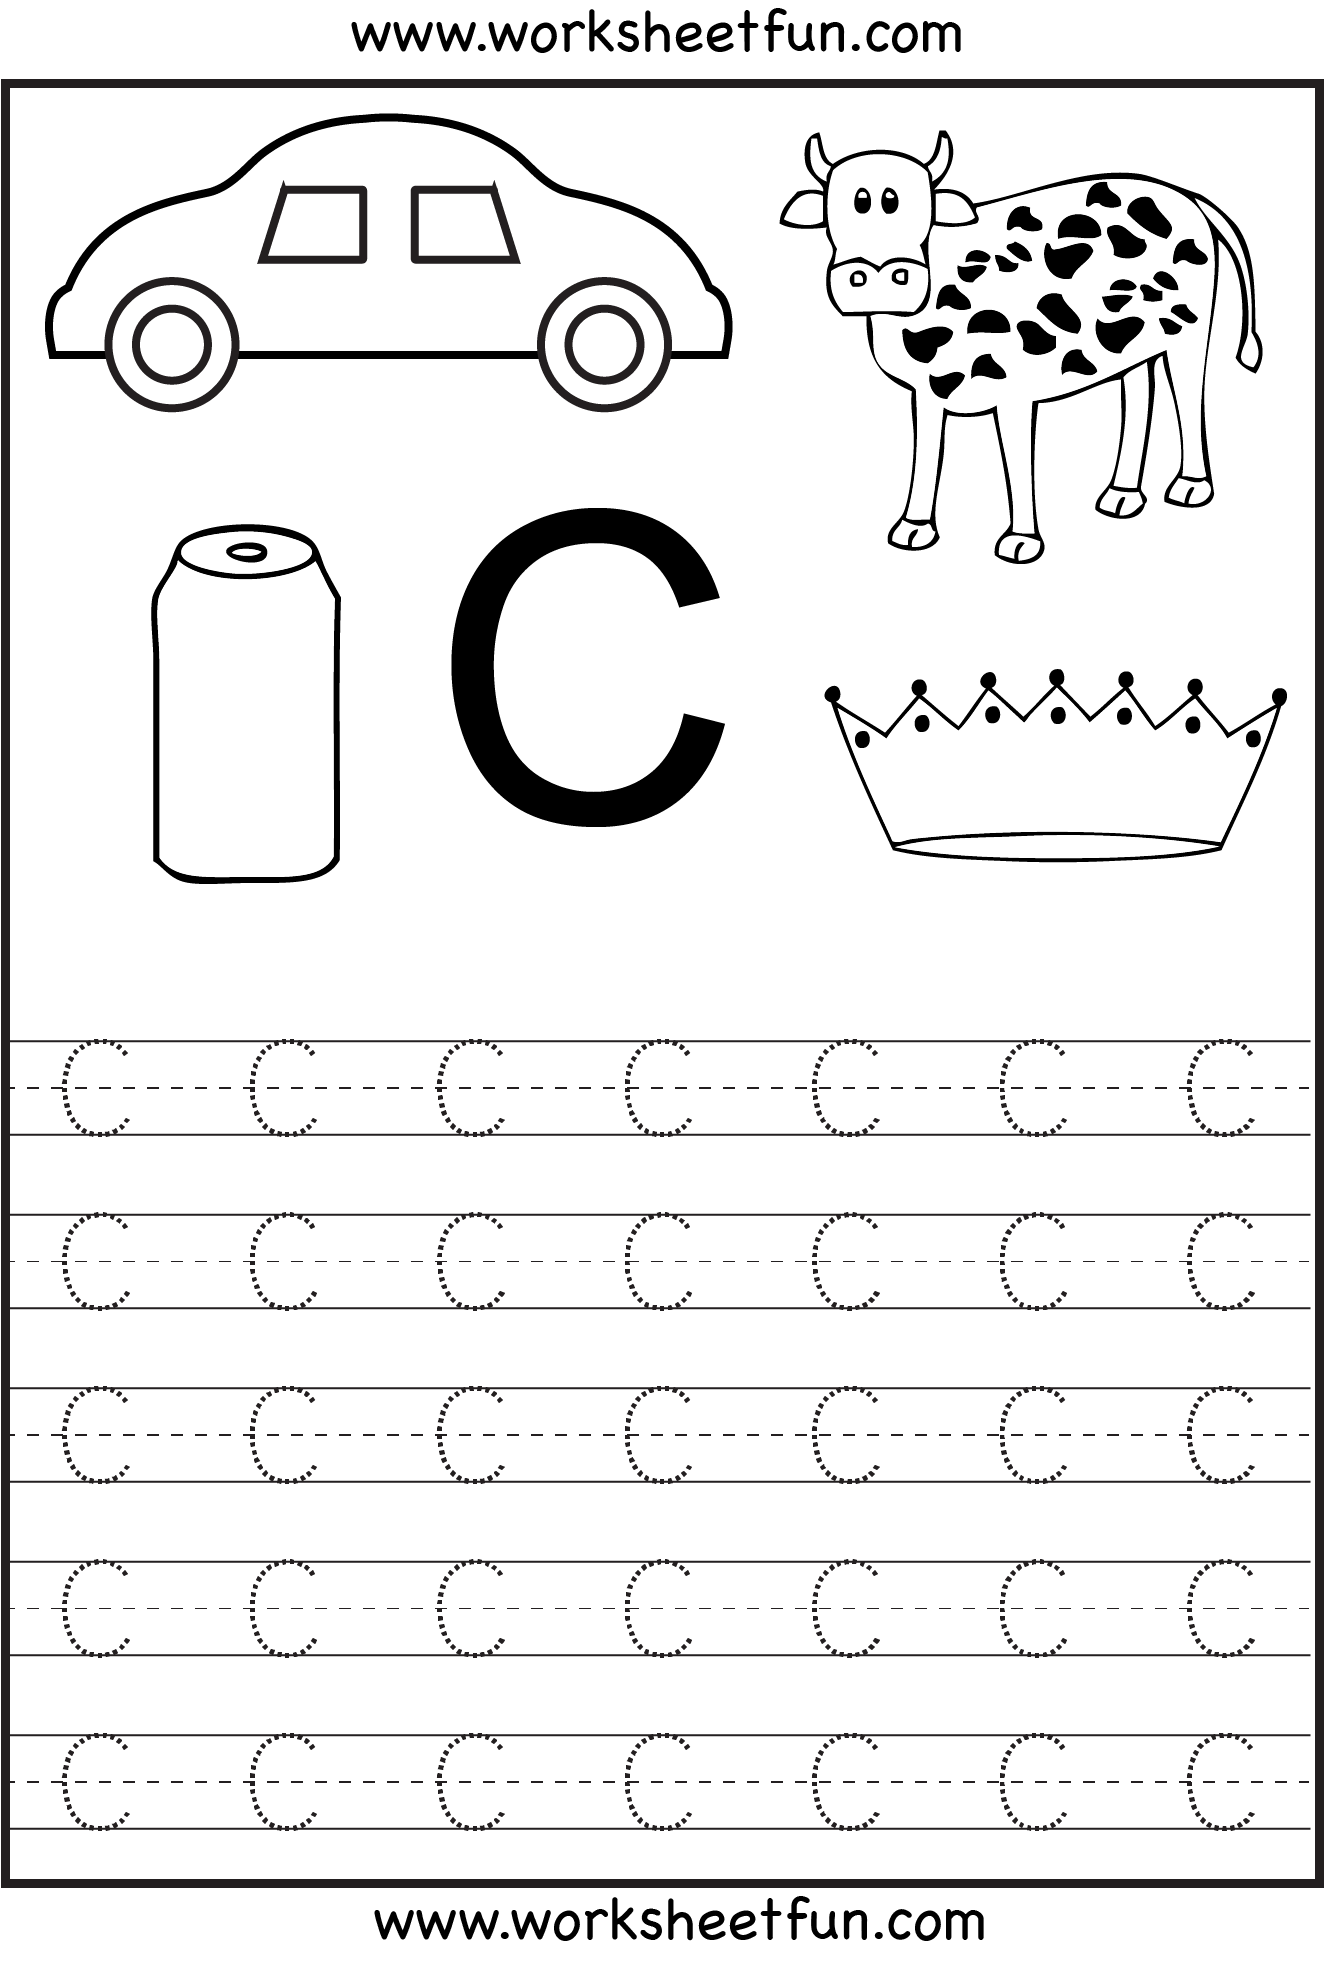 Learning The Letter C | Worksheet | Education | Learning